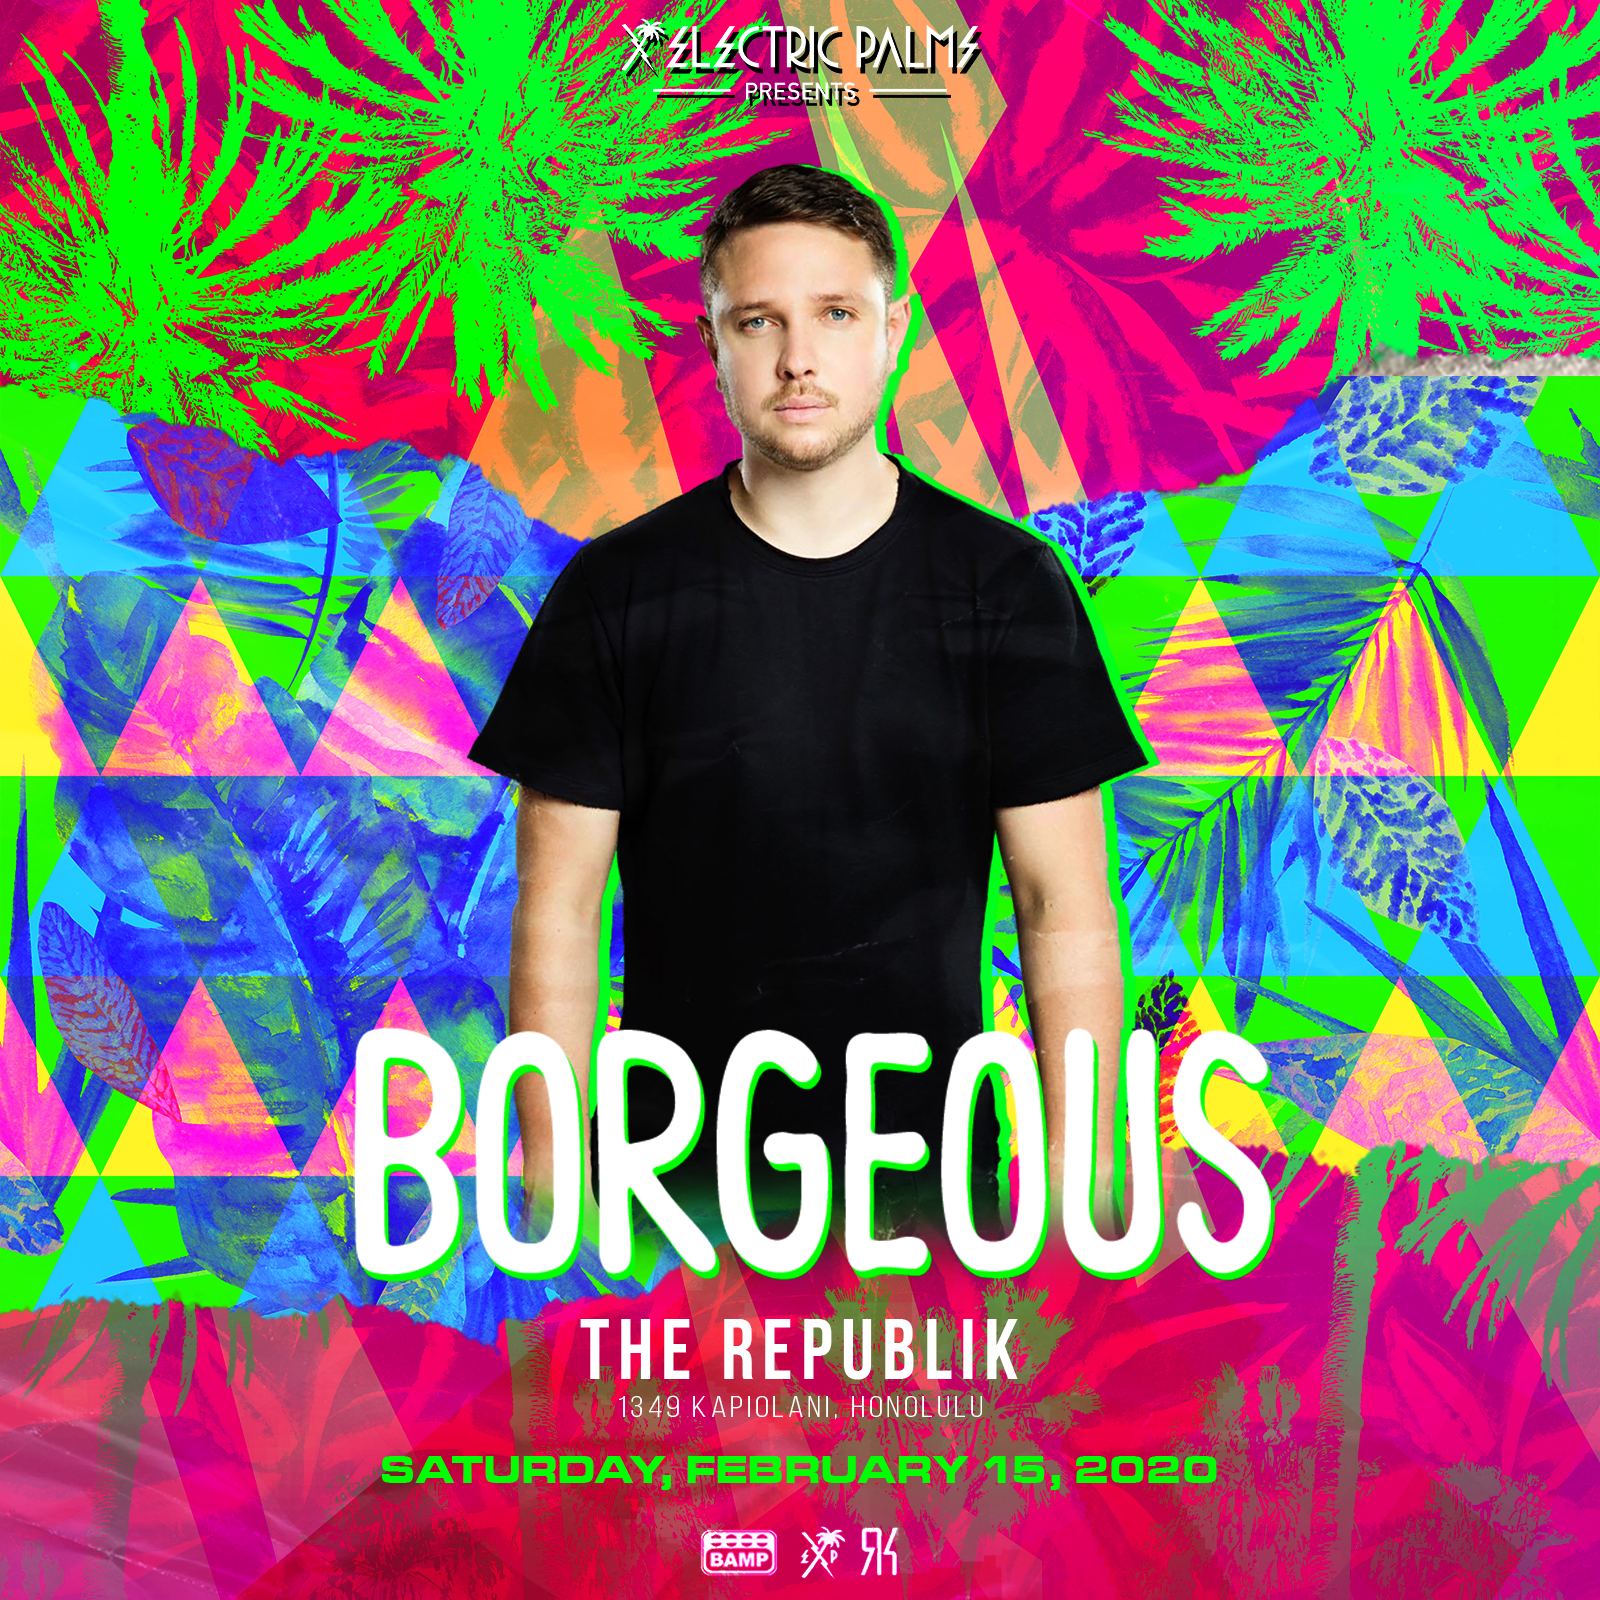 ep_borgeous-1600-1600.png